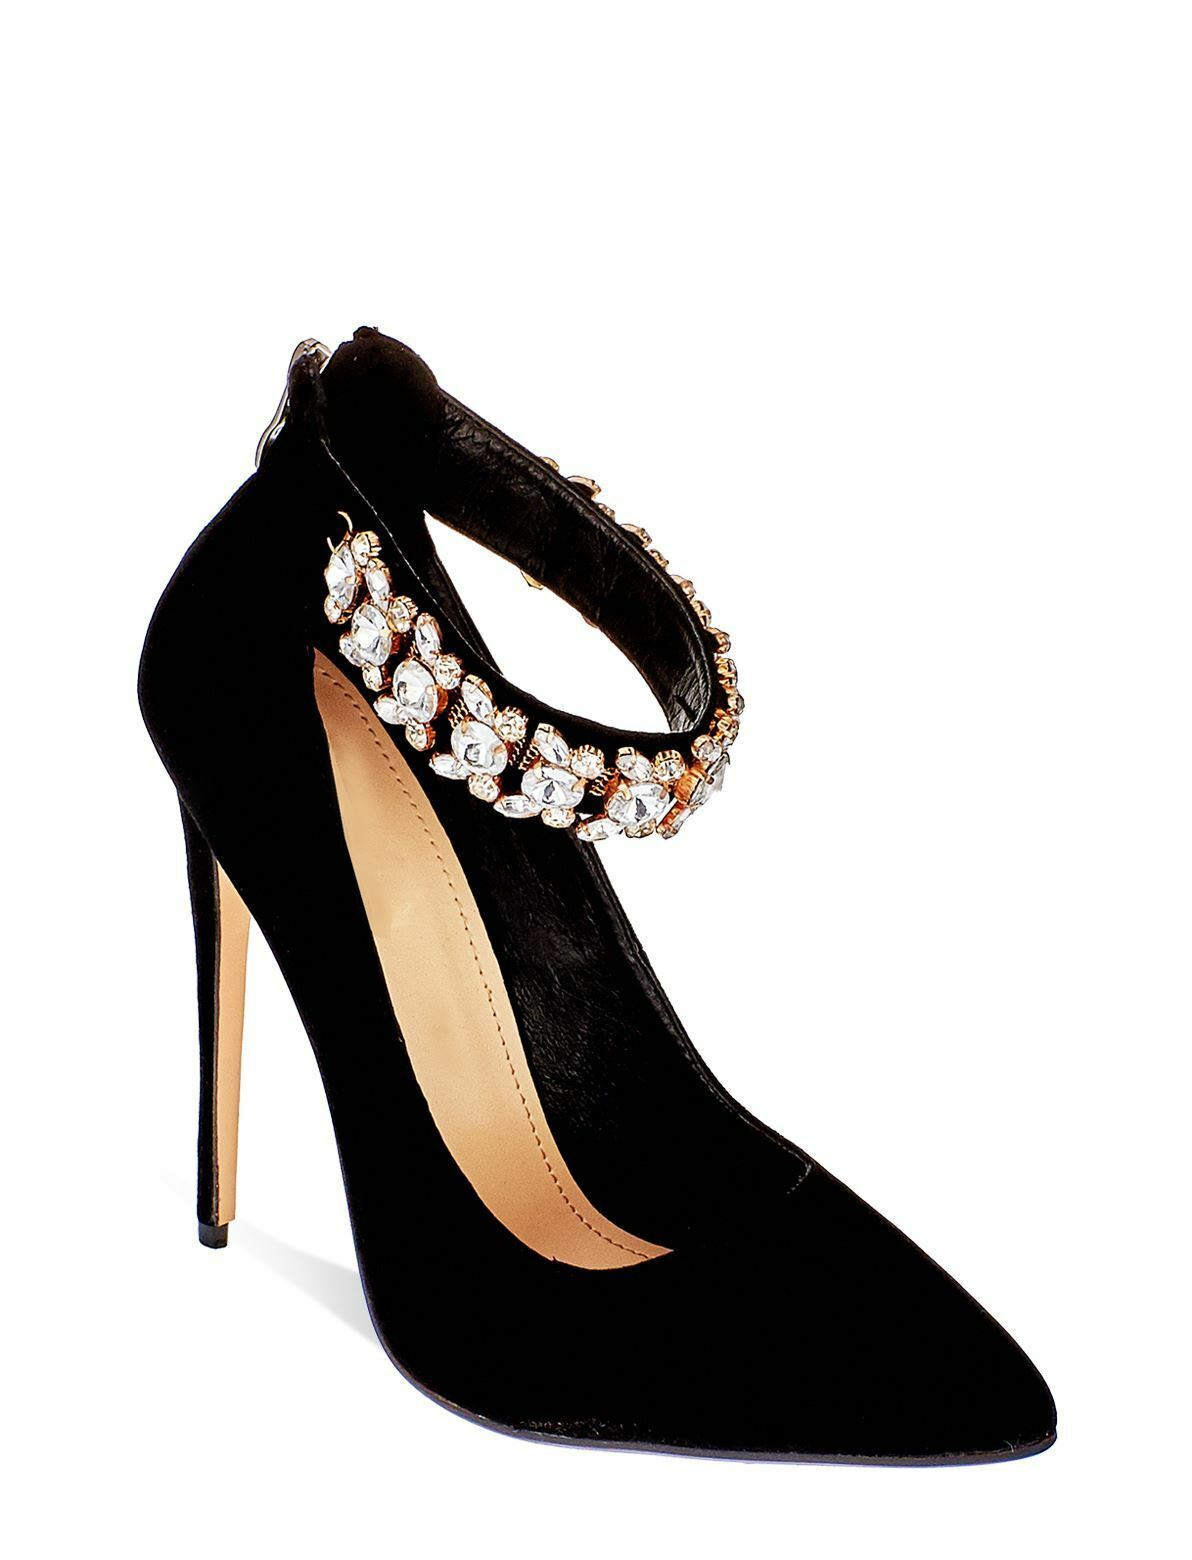 Mr/Ms Womens high heel ankle strap diamante sandals selling Ladies party shoes 3-8 selling sandals price Let our products go to the world classic style WW3624 941eed